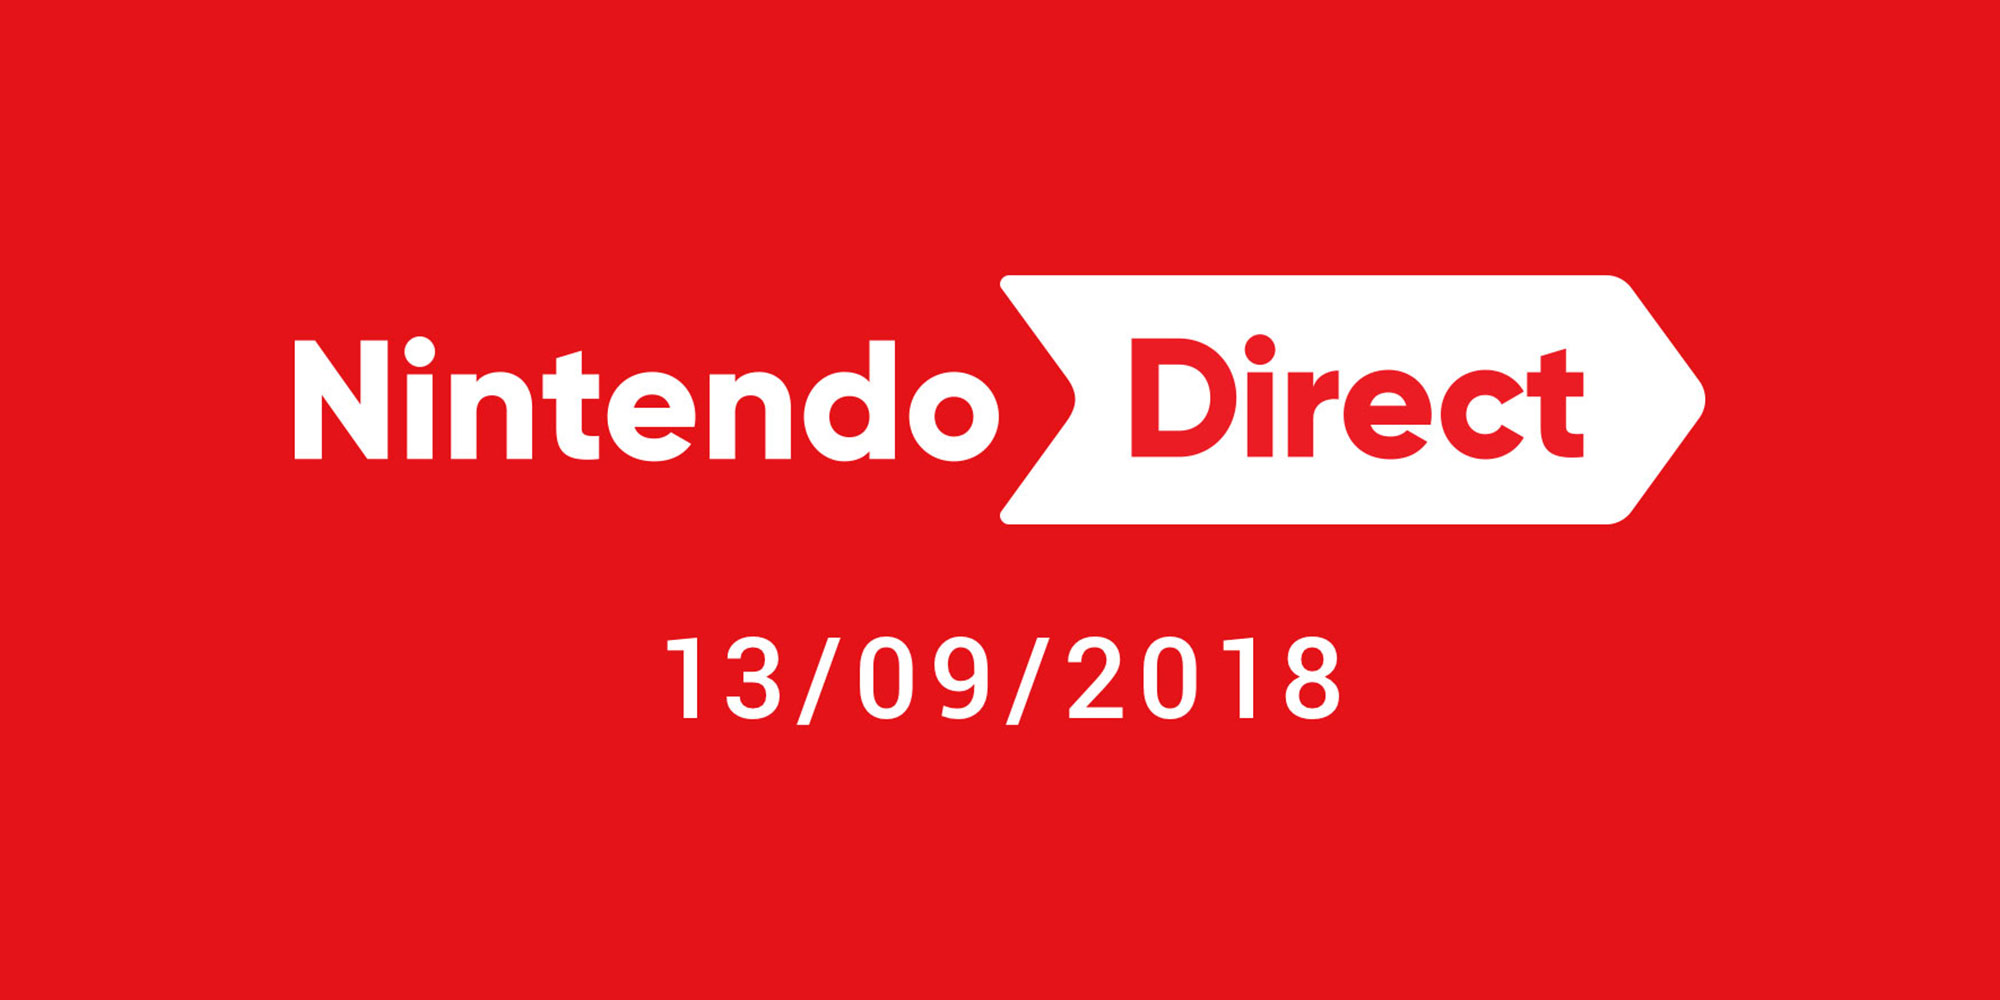 Animal Crossing, Luigi's Mansion 3 (voorlopige titel) en FINAL FANTASY-games aangekondigd voor de Nintendo Switch in de nieuwste Nintendo Direct-presentatie!